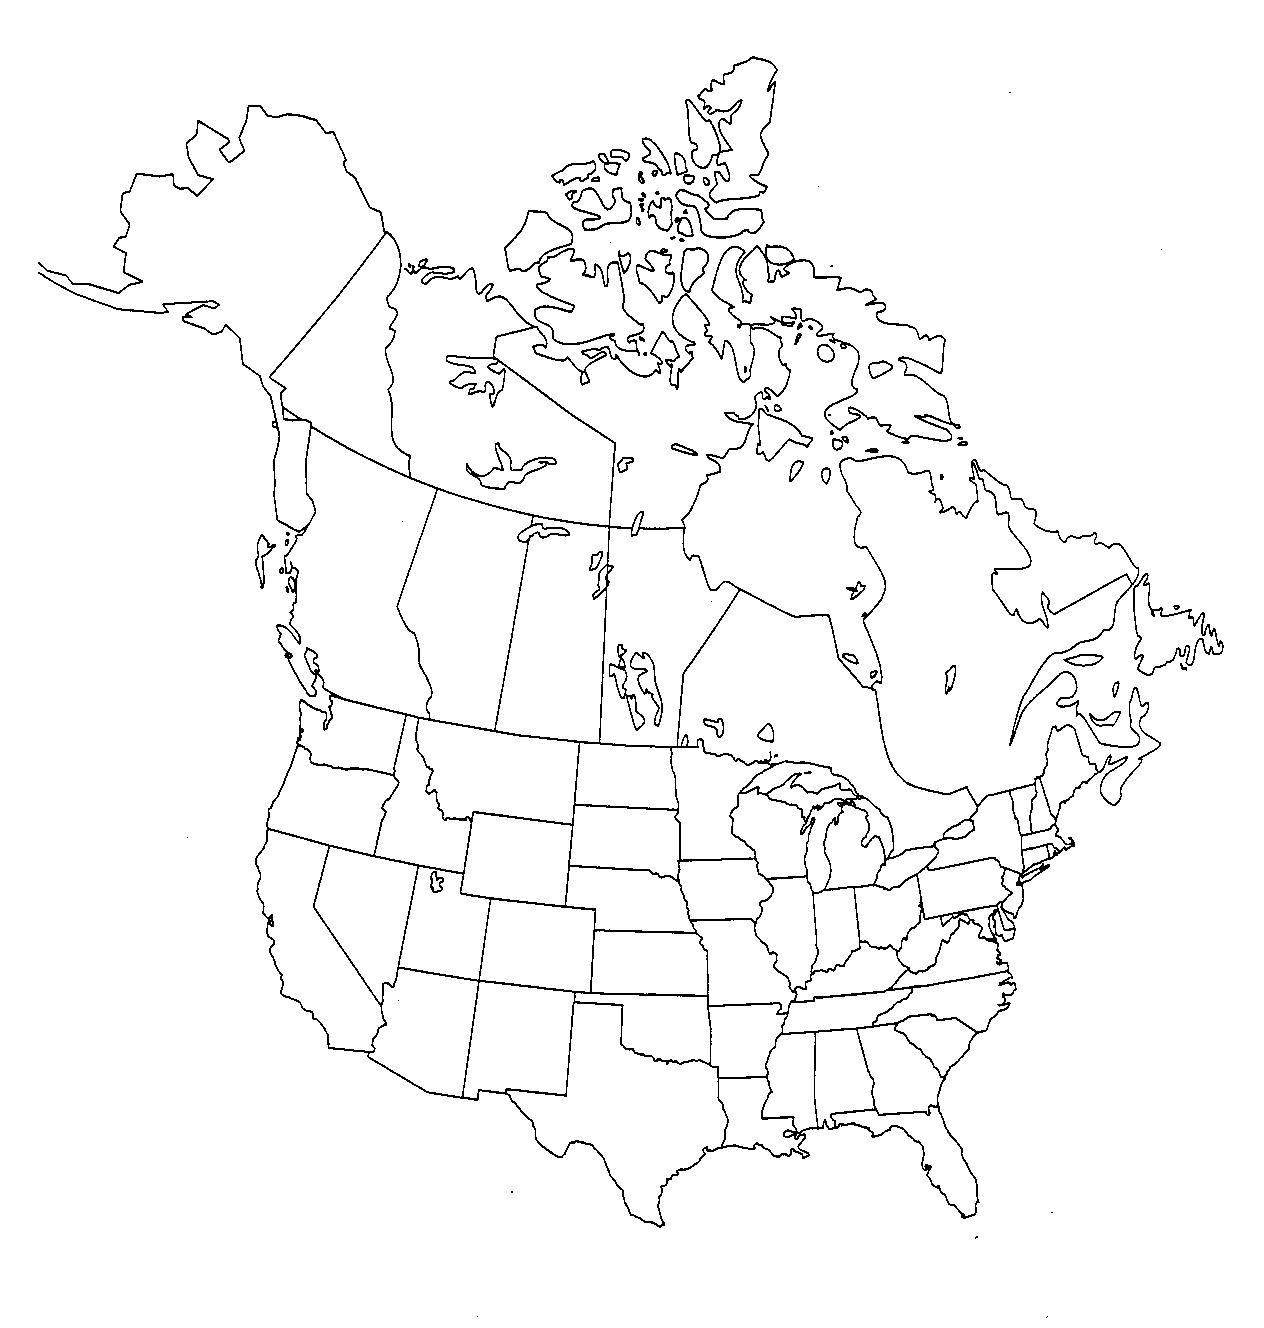 Blank Us And Canada Map Printable Us And Canada Map 8 Printable - Blank Us And Canada Map Printable